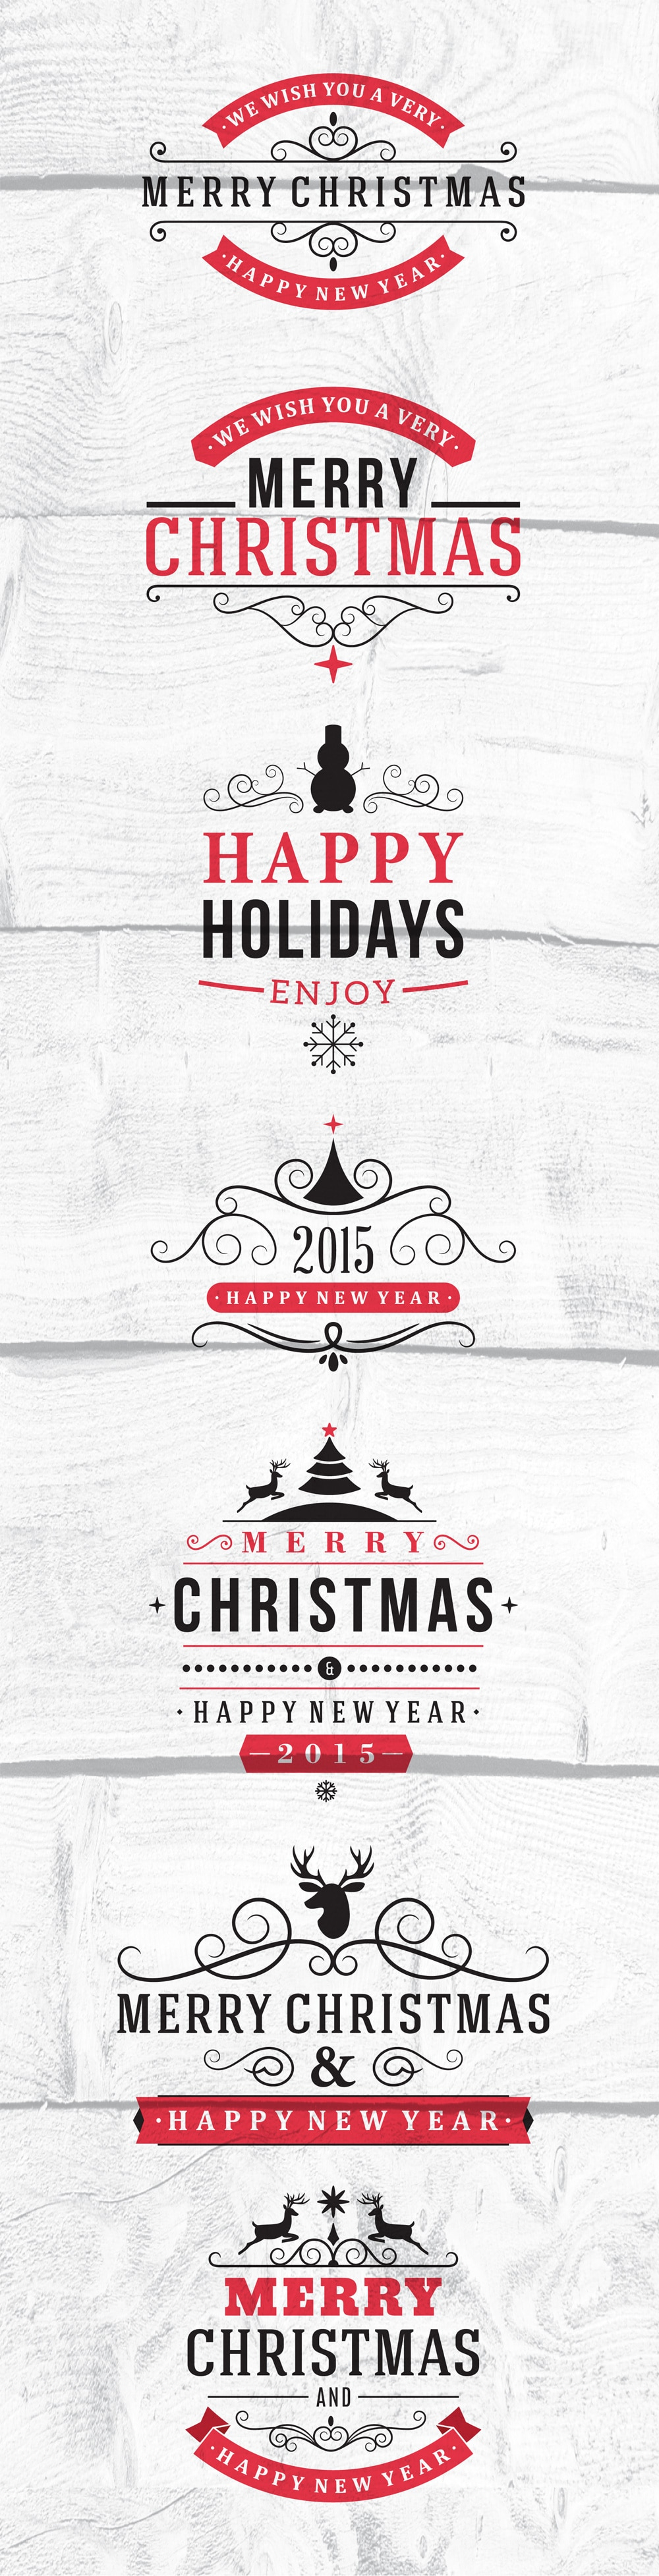 Free Christmas Calligraphic and Typographic Design Vector